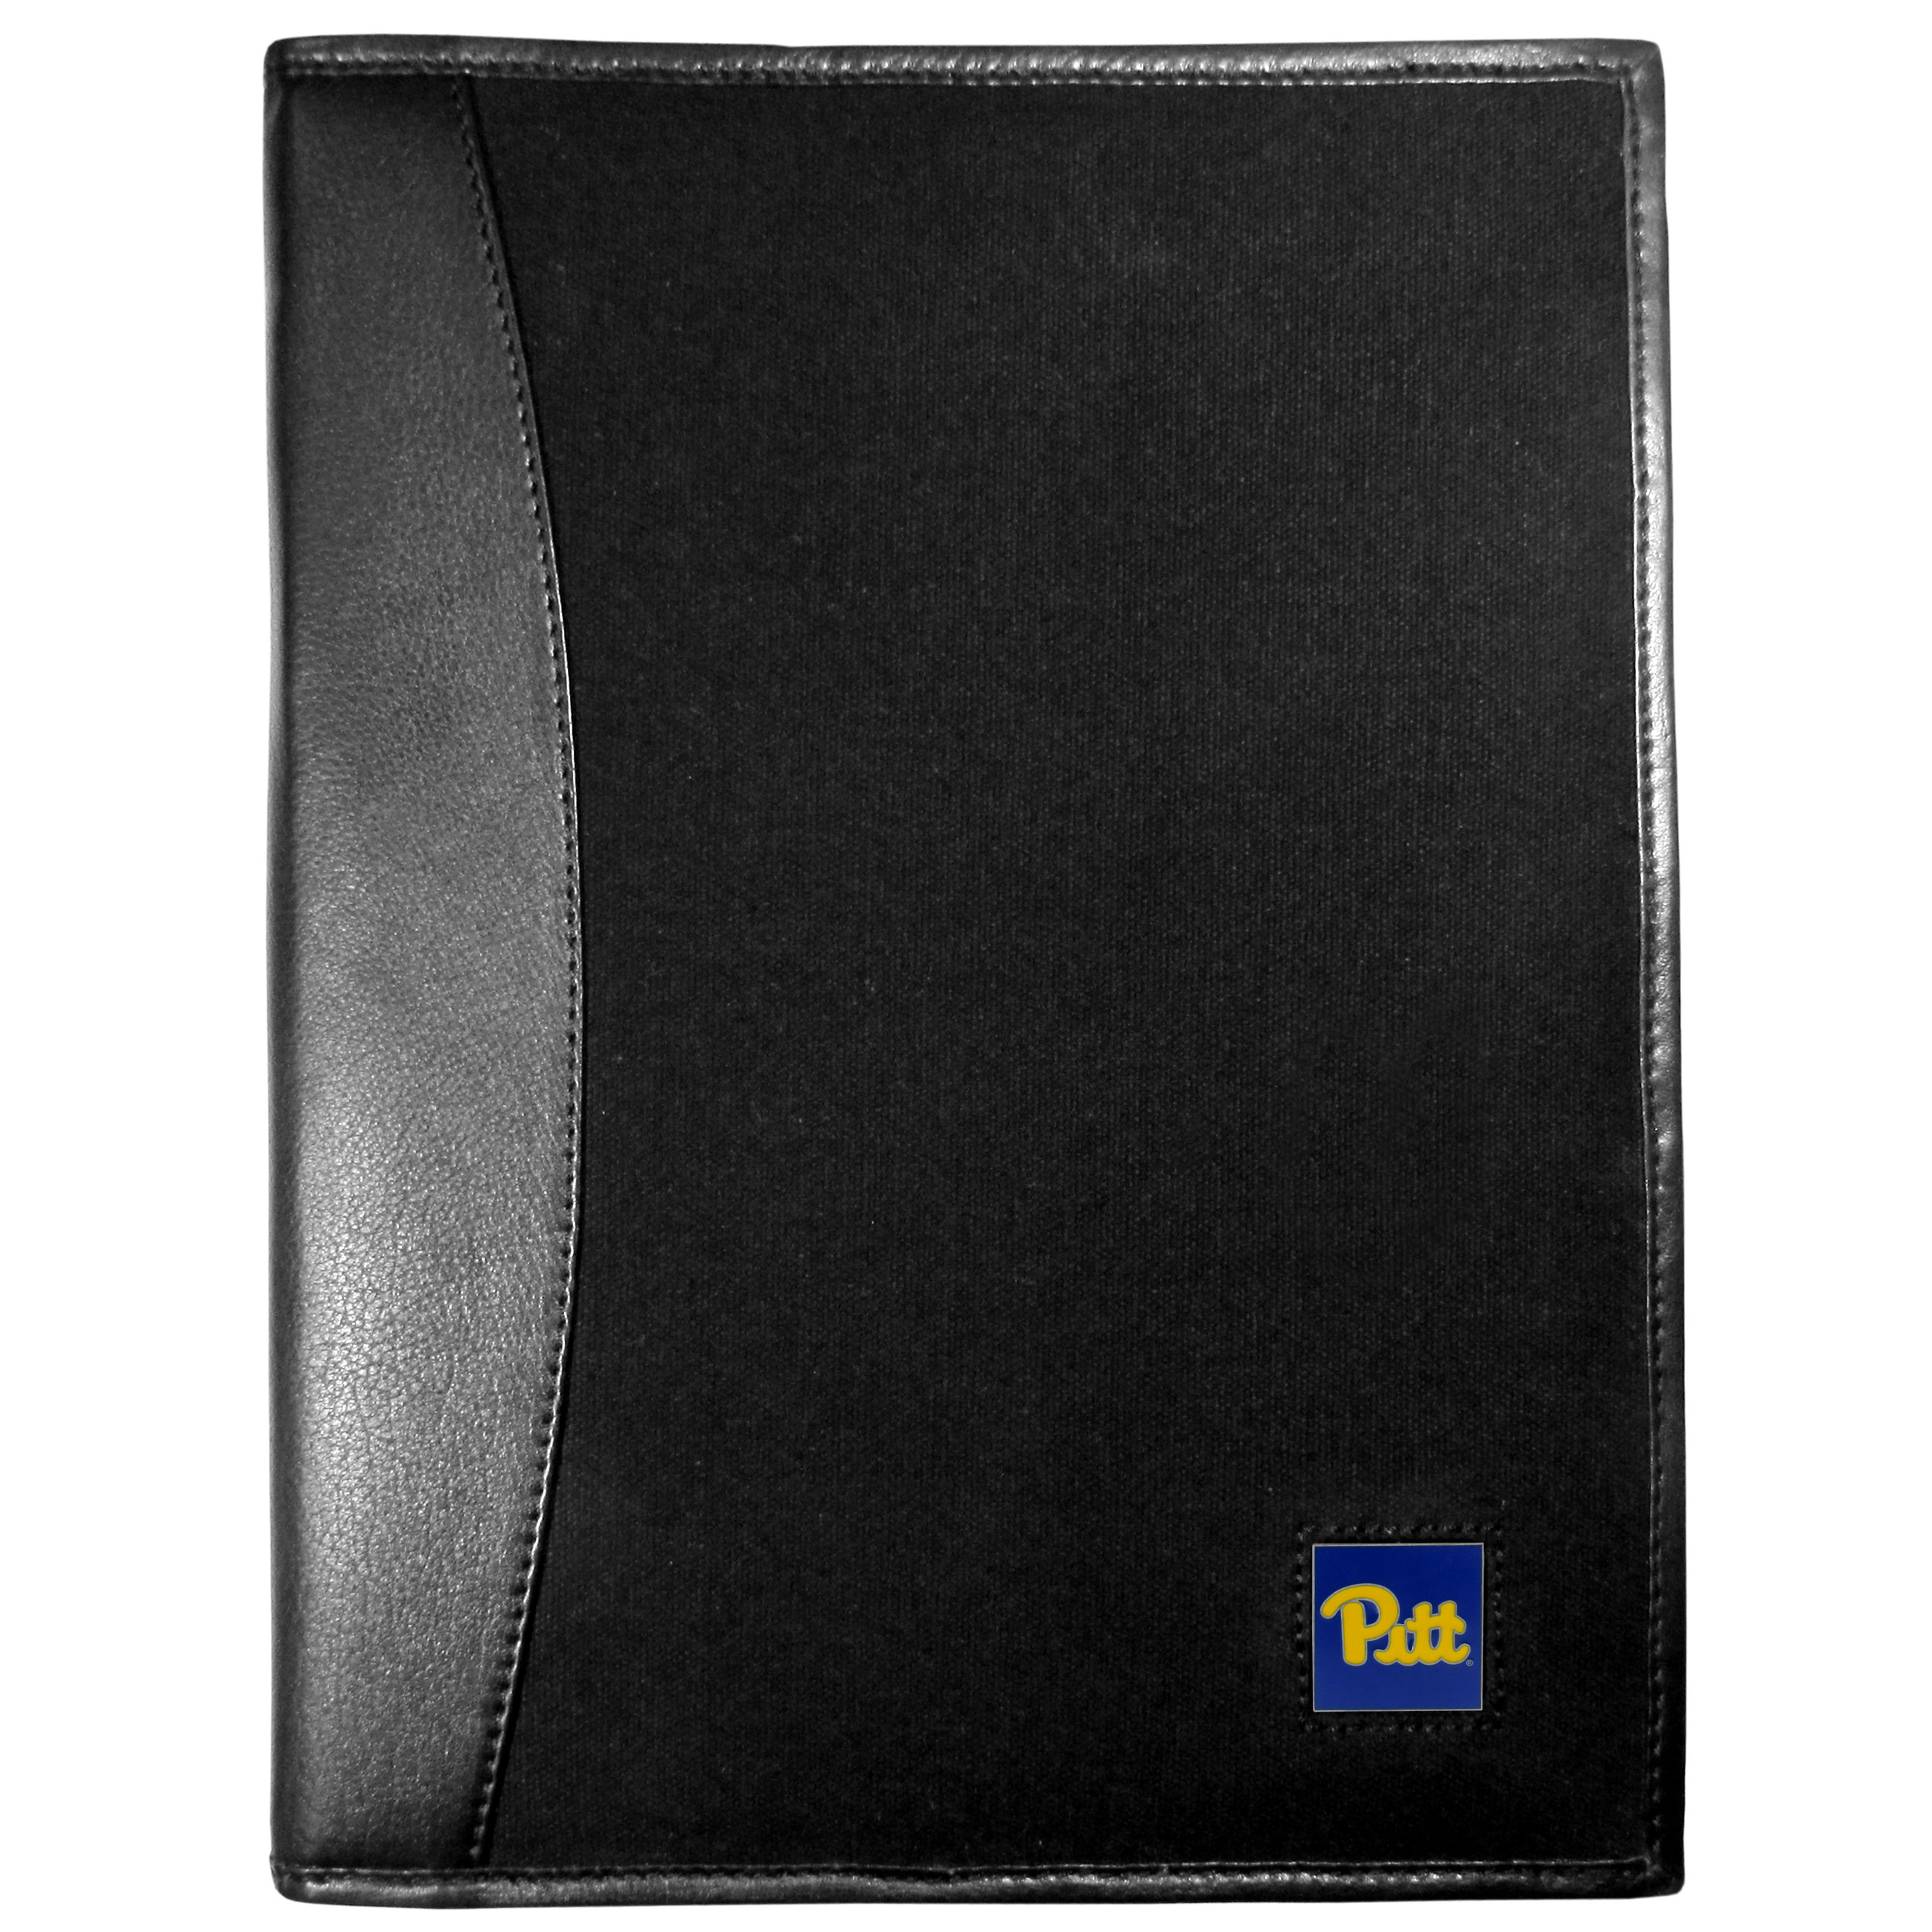 PITT Panthers Leather and Canvas Padfolio - Our leather and canvas padfolio perfectly blends form and function. The attractive portfolio is bound in fine grain leather with an attractive canvas finish and the interior is a soft nylon. This high quality business accessory also features a fully cast metal PITT Panthers emblem that is subtly set in the corner of the organizer. It is packed with features like 6 card slots for badges, business cards, hotel keys or credit cards and ID with a large pocket for loose papers and a writing tablet slot making it a must-have for the professional on the go.